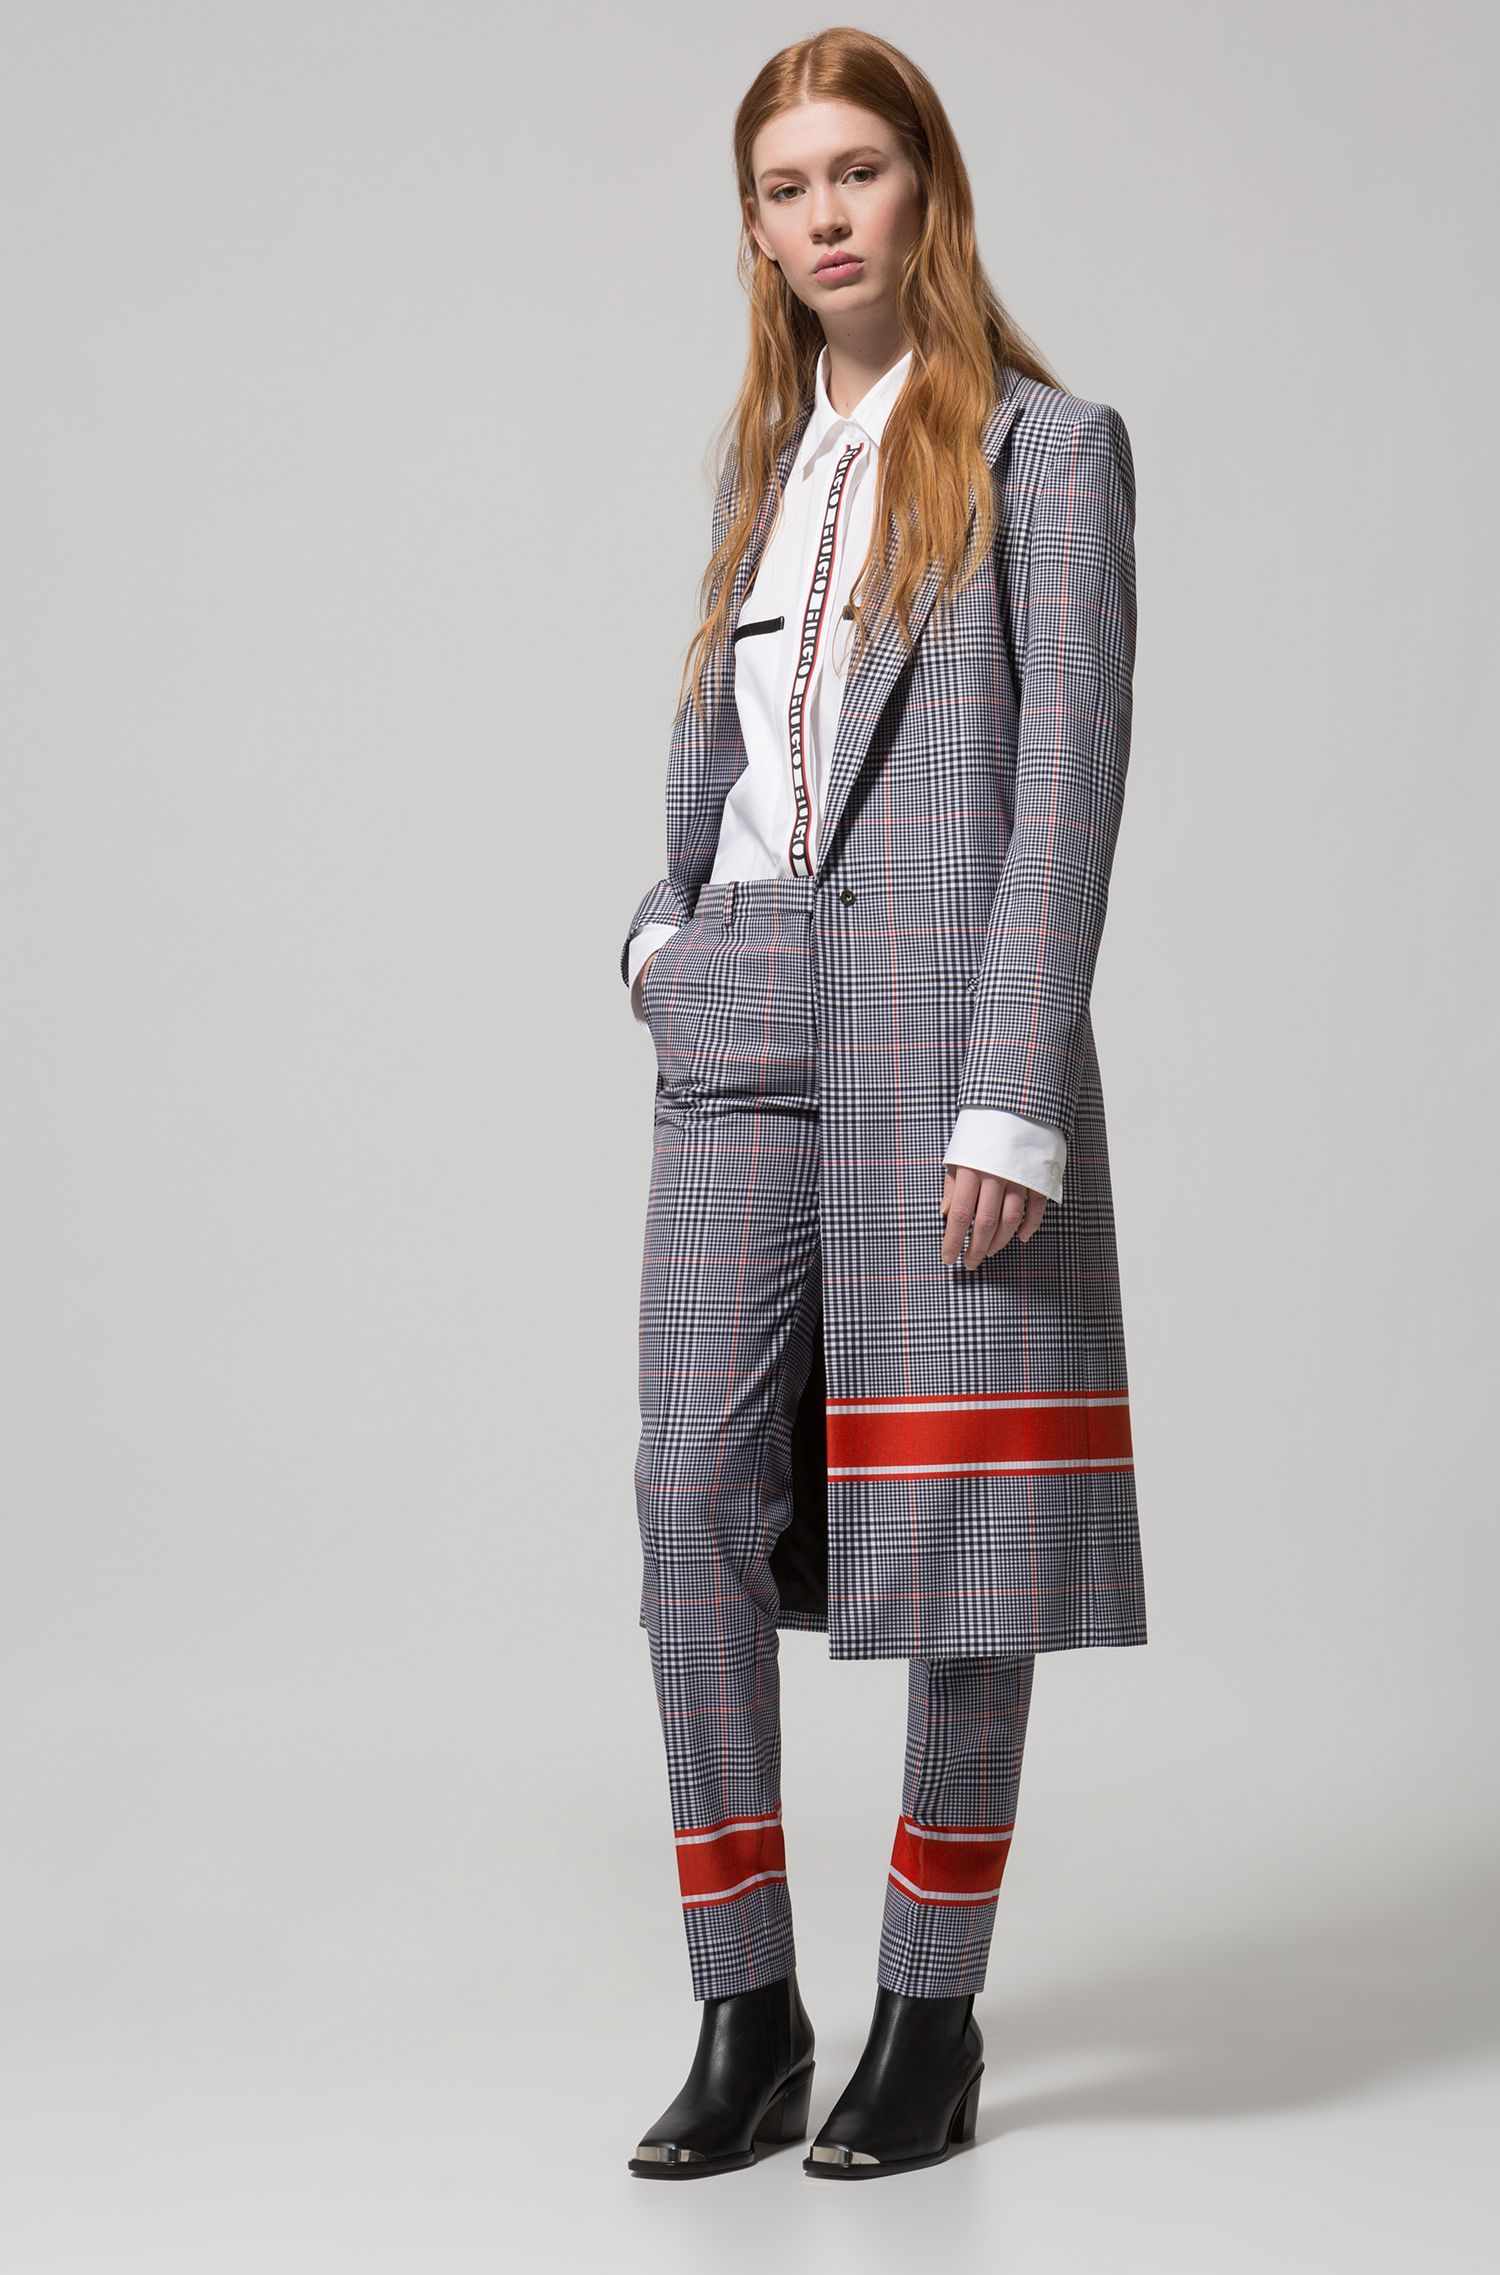 Relaxed-fit coat with plain check and contrast stripe